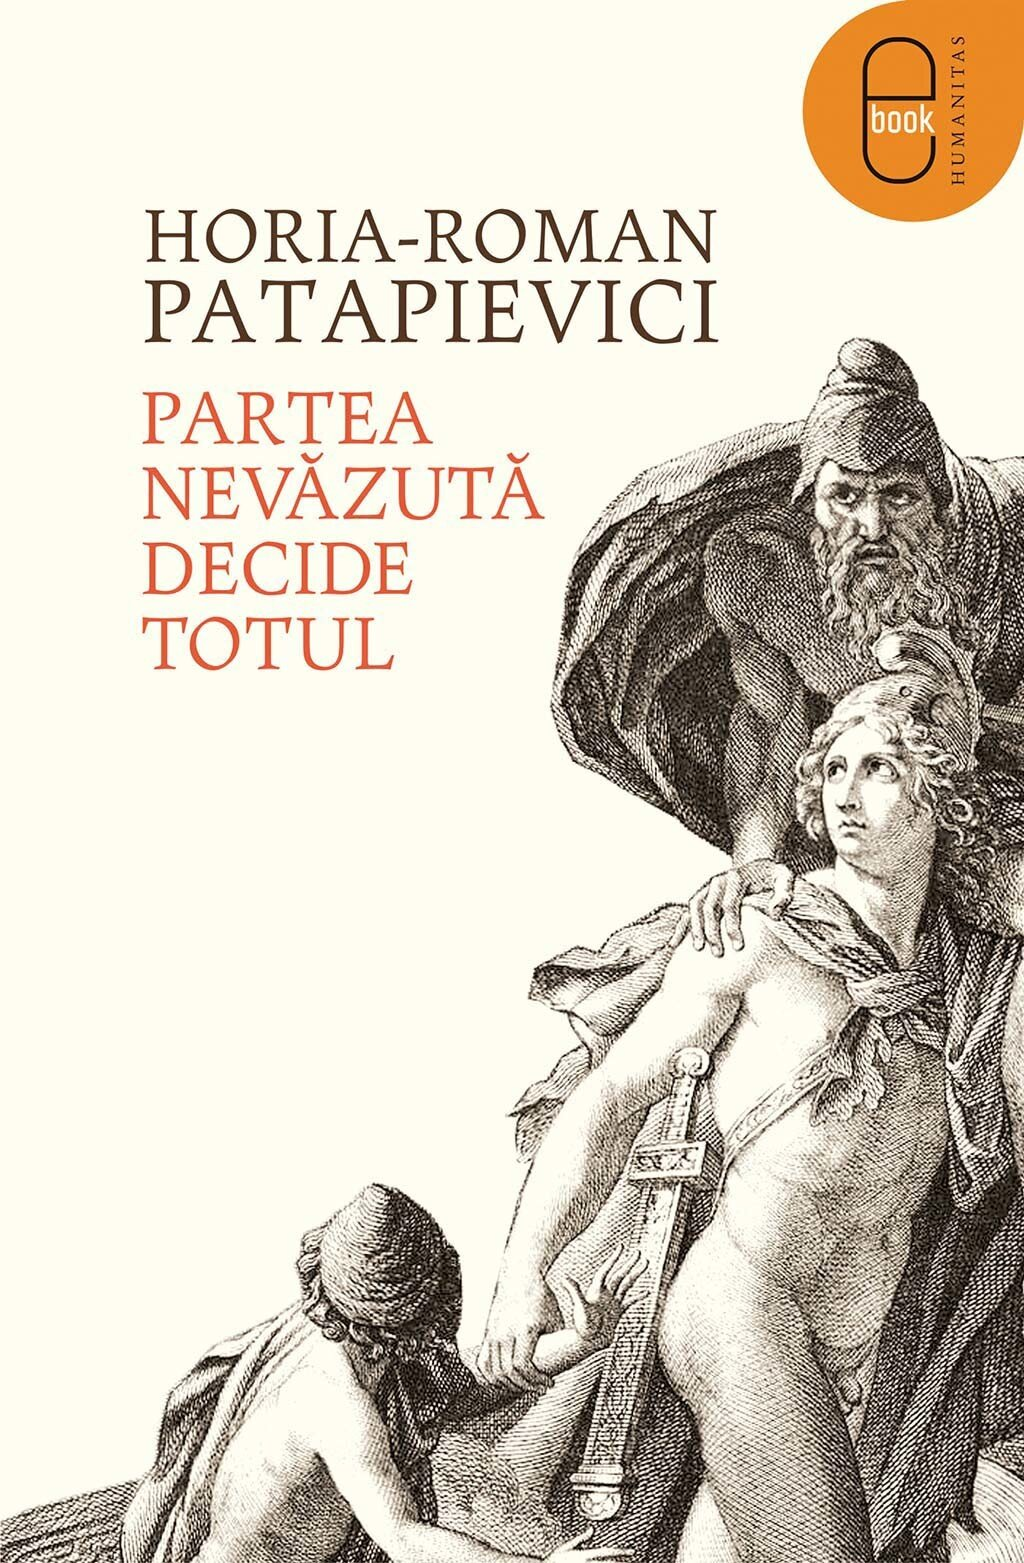 Partea nevazuta decide totul PDF (Download eBook)